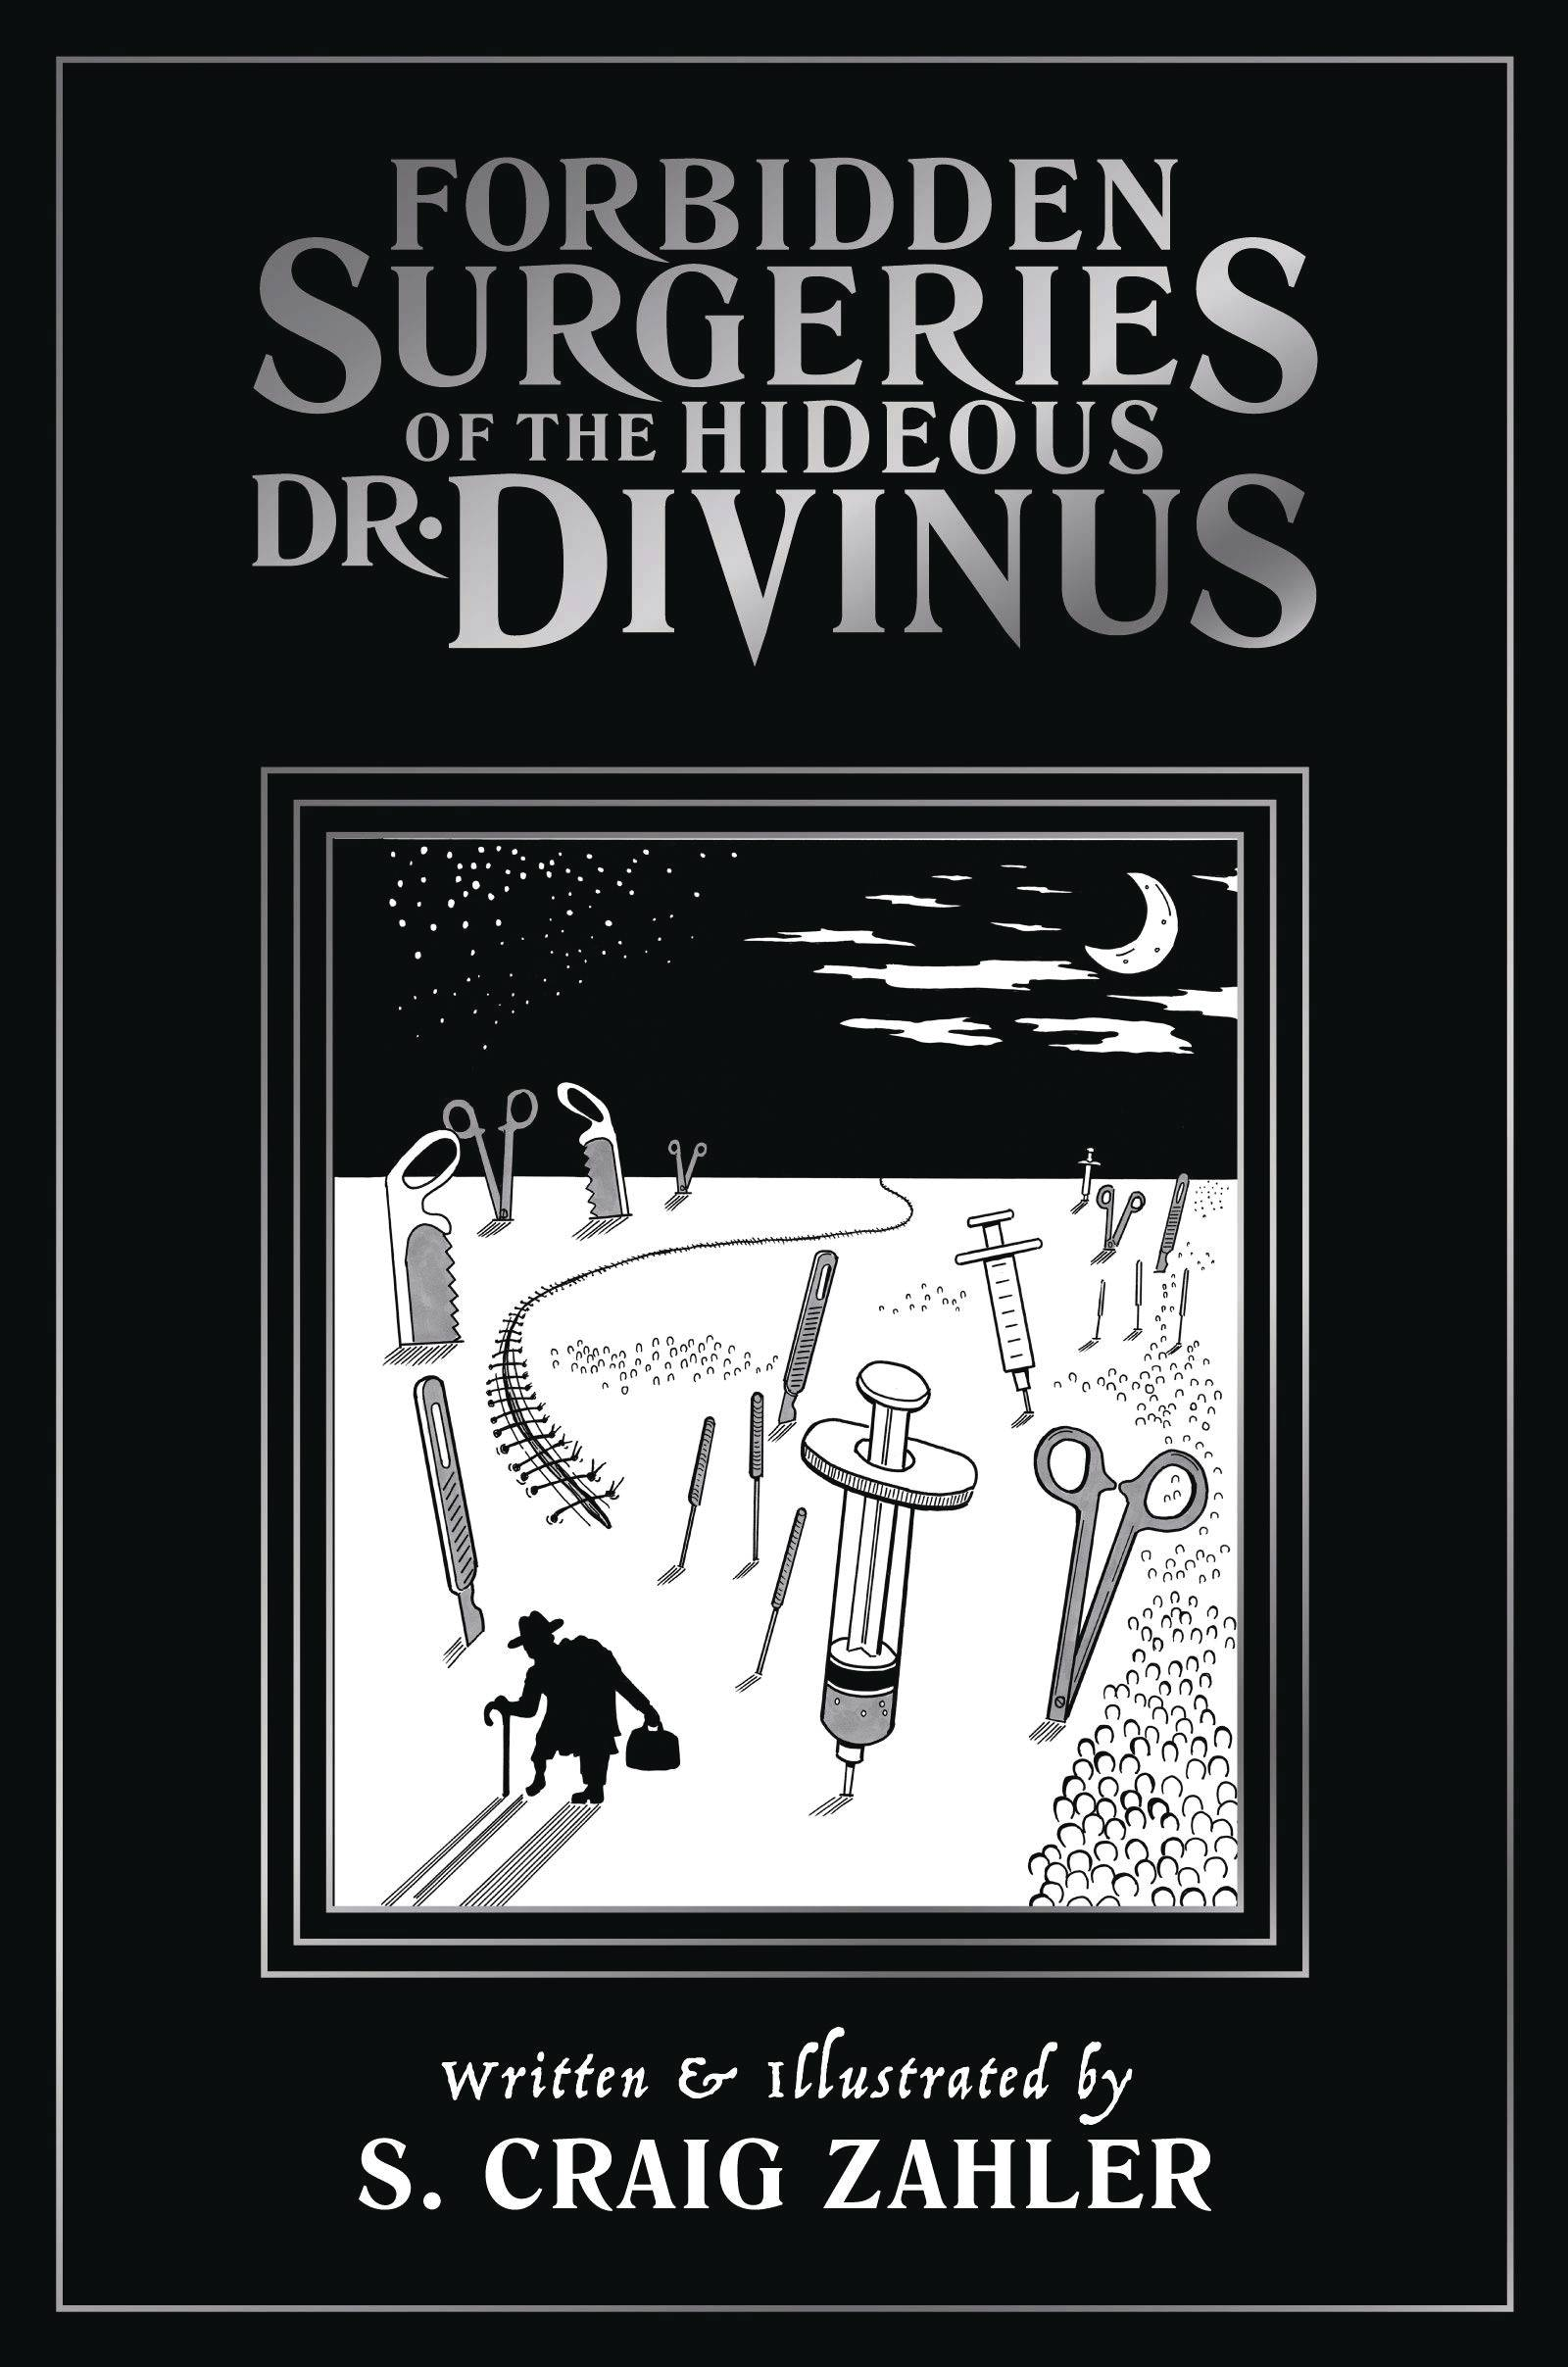 FORBIDDEN SURGERIES OF HIDEOUS DR. DIVINUS TP